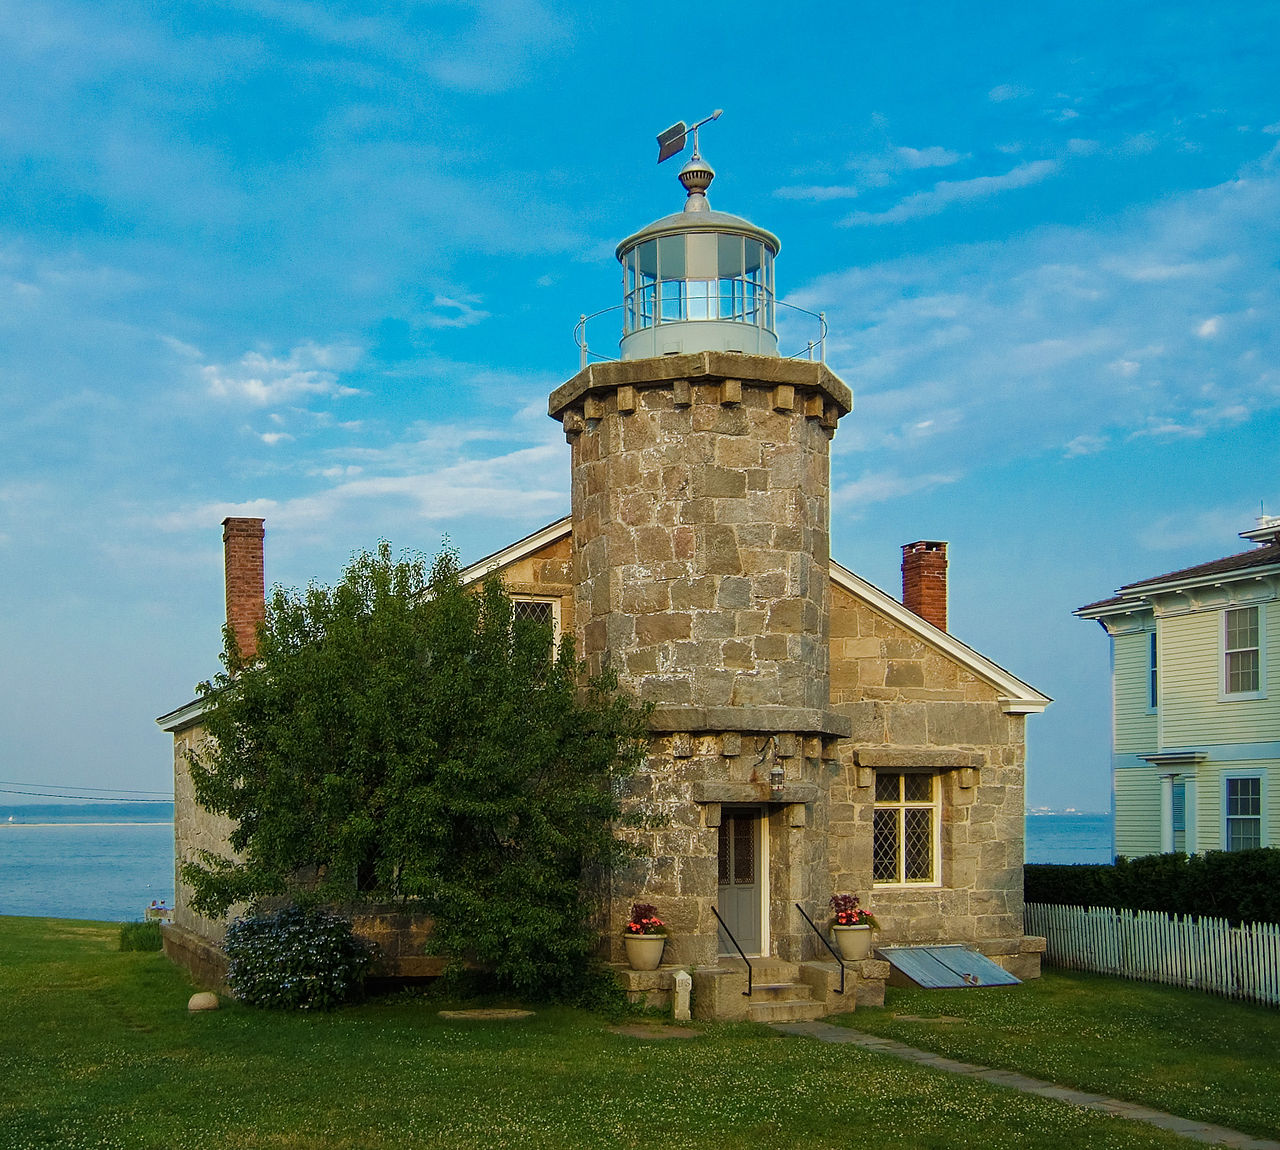 The Stonington Harbor Light was built in 1840 and is now a museum.